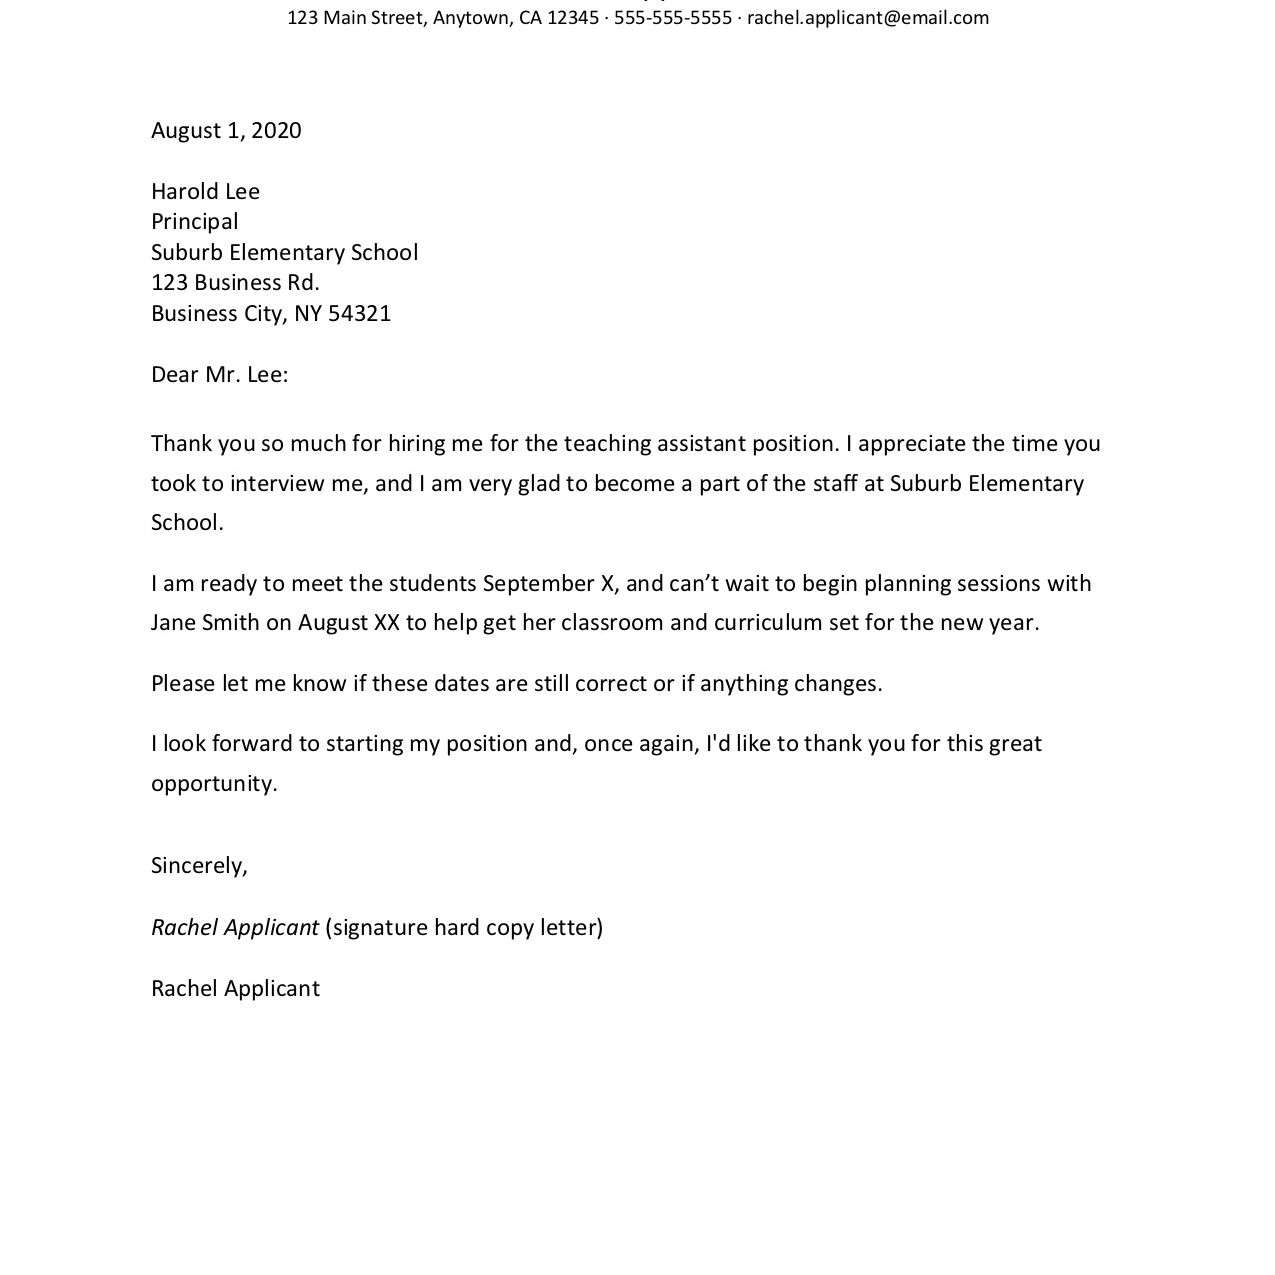 Employment Counter Offer Letter from www.thebalancecareers.com